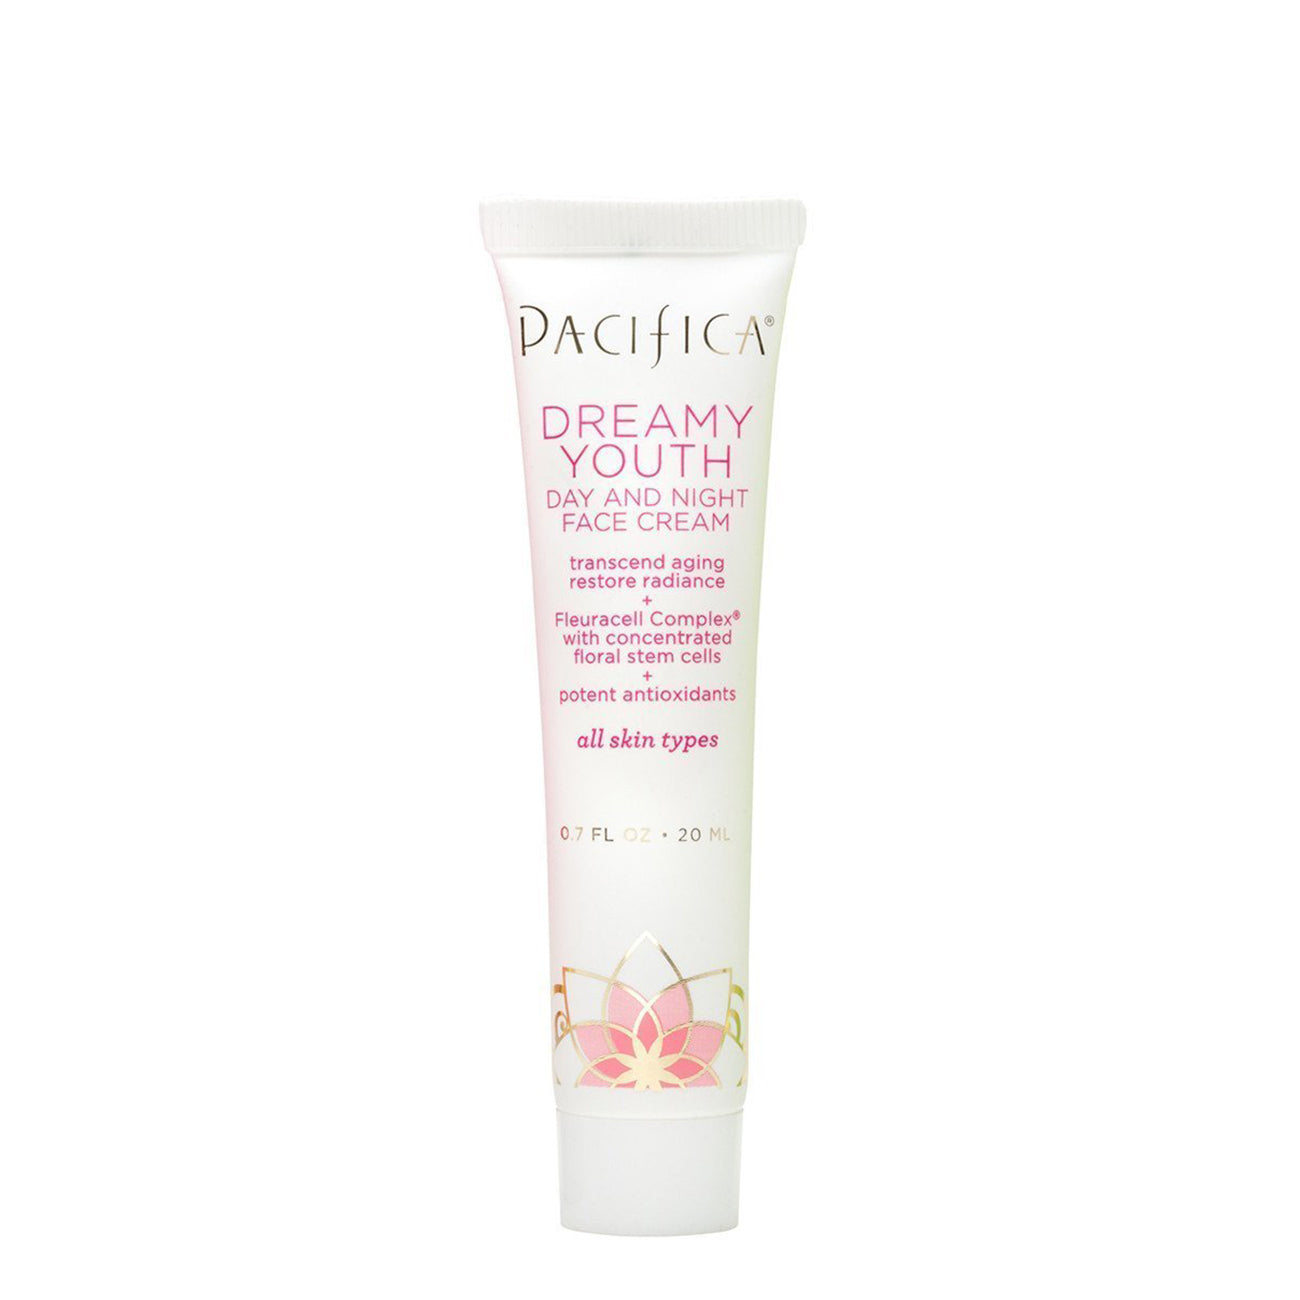 Dreamy Youth Day & Night Face Cream Mini (.7 FL OZ)